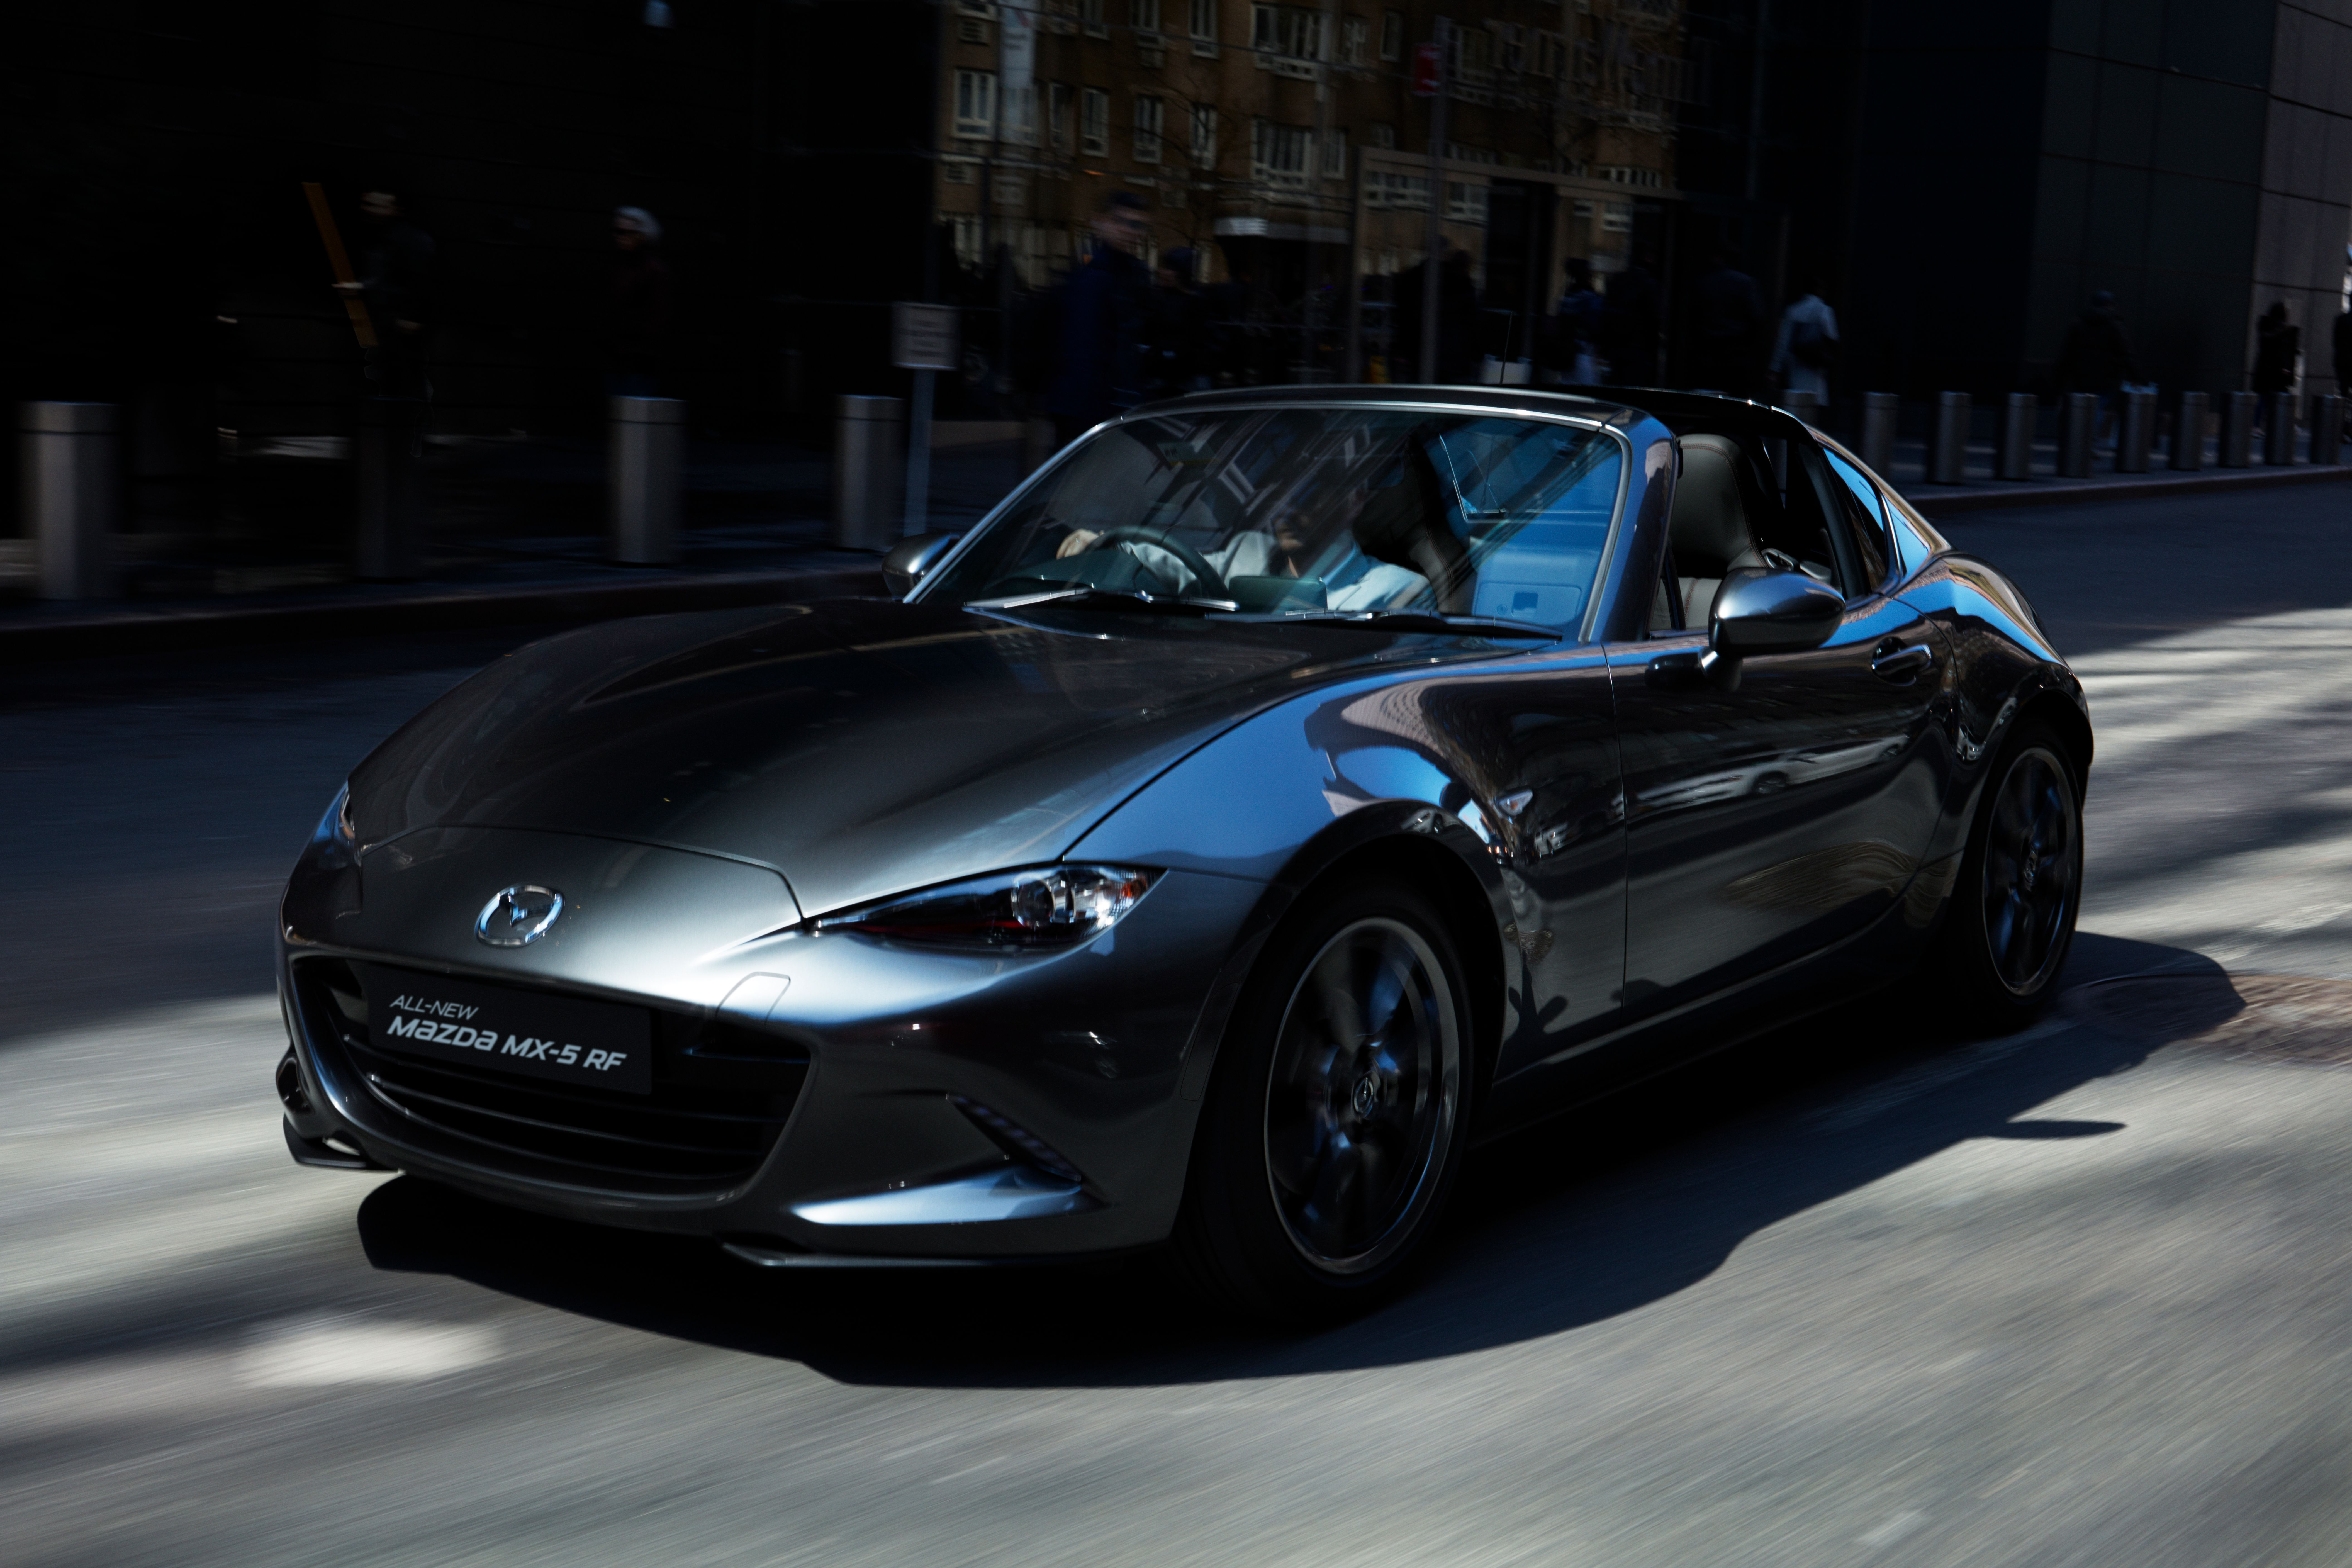 Test drive the All-new Mazda MX-5 RF and get a free nights hotel stay on us!